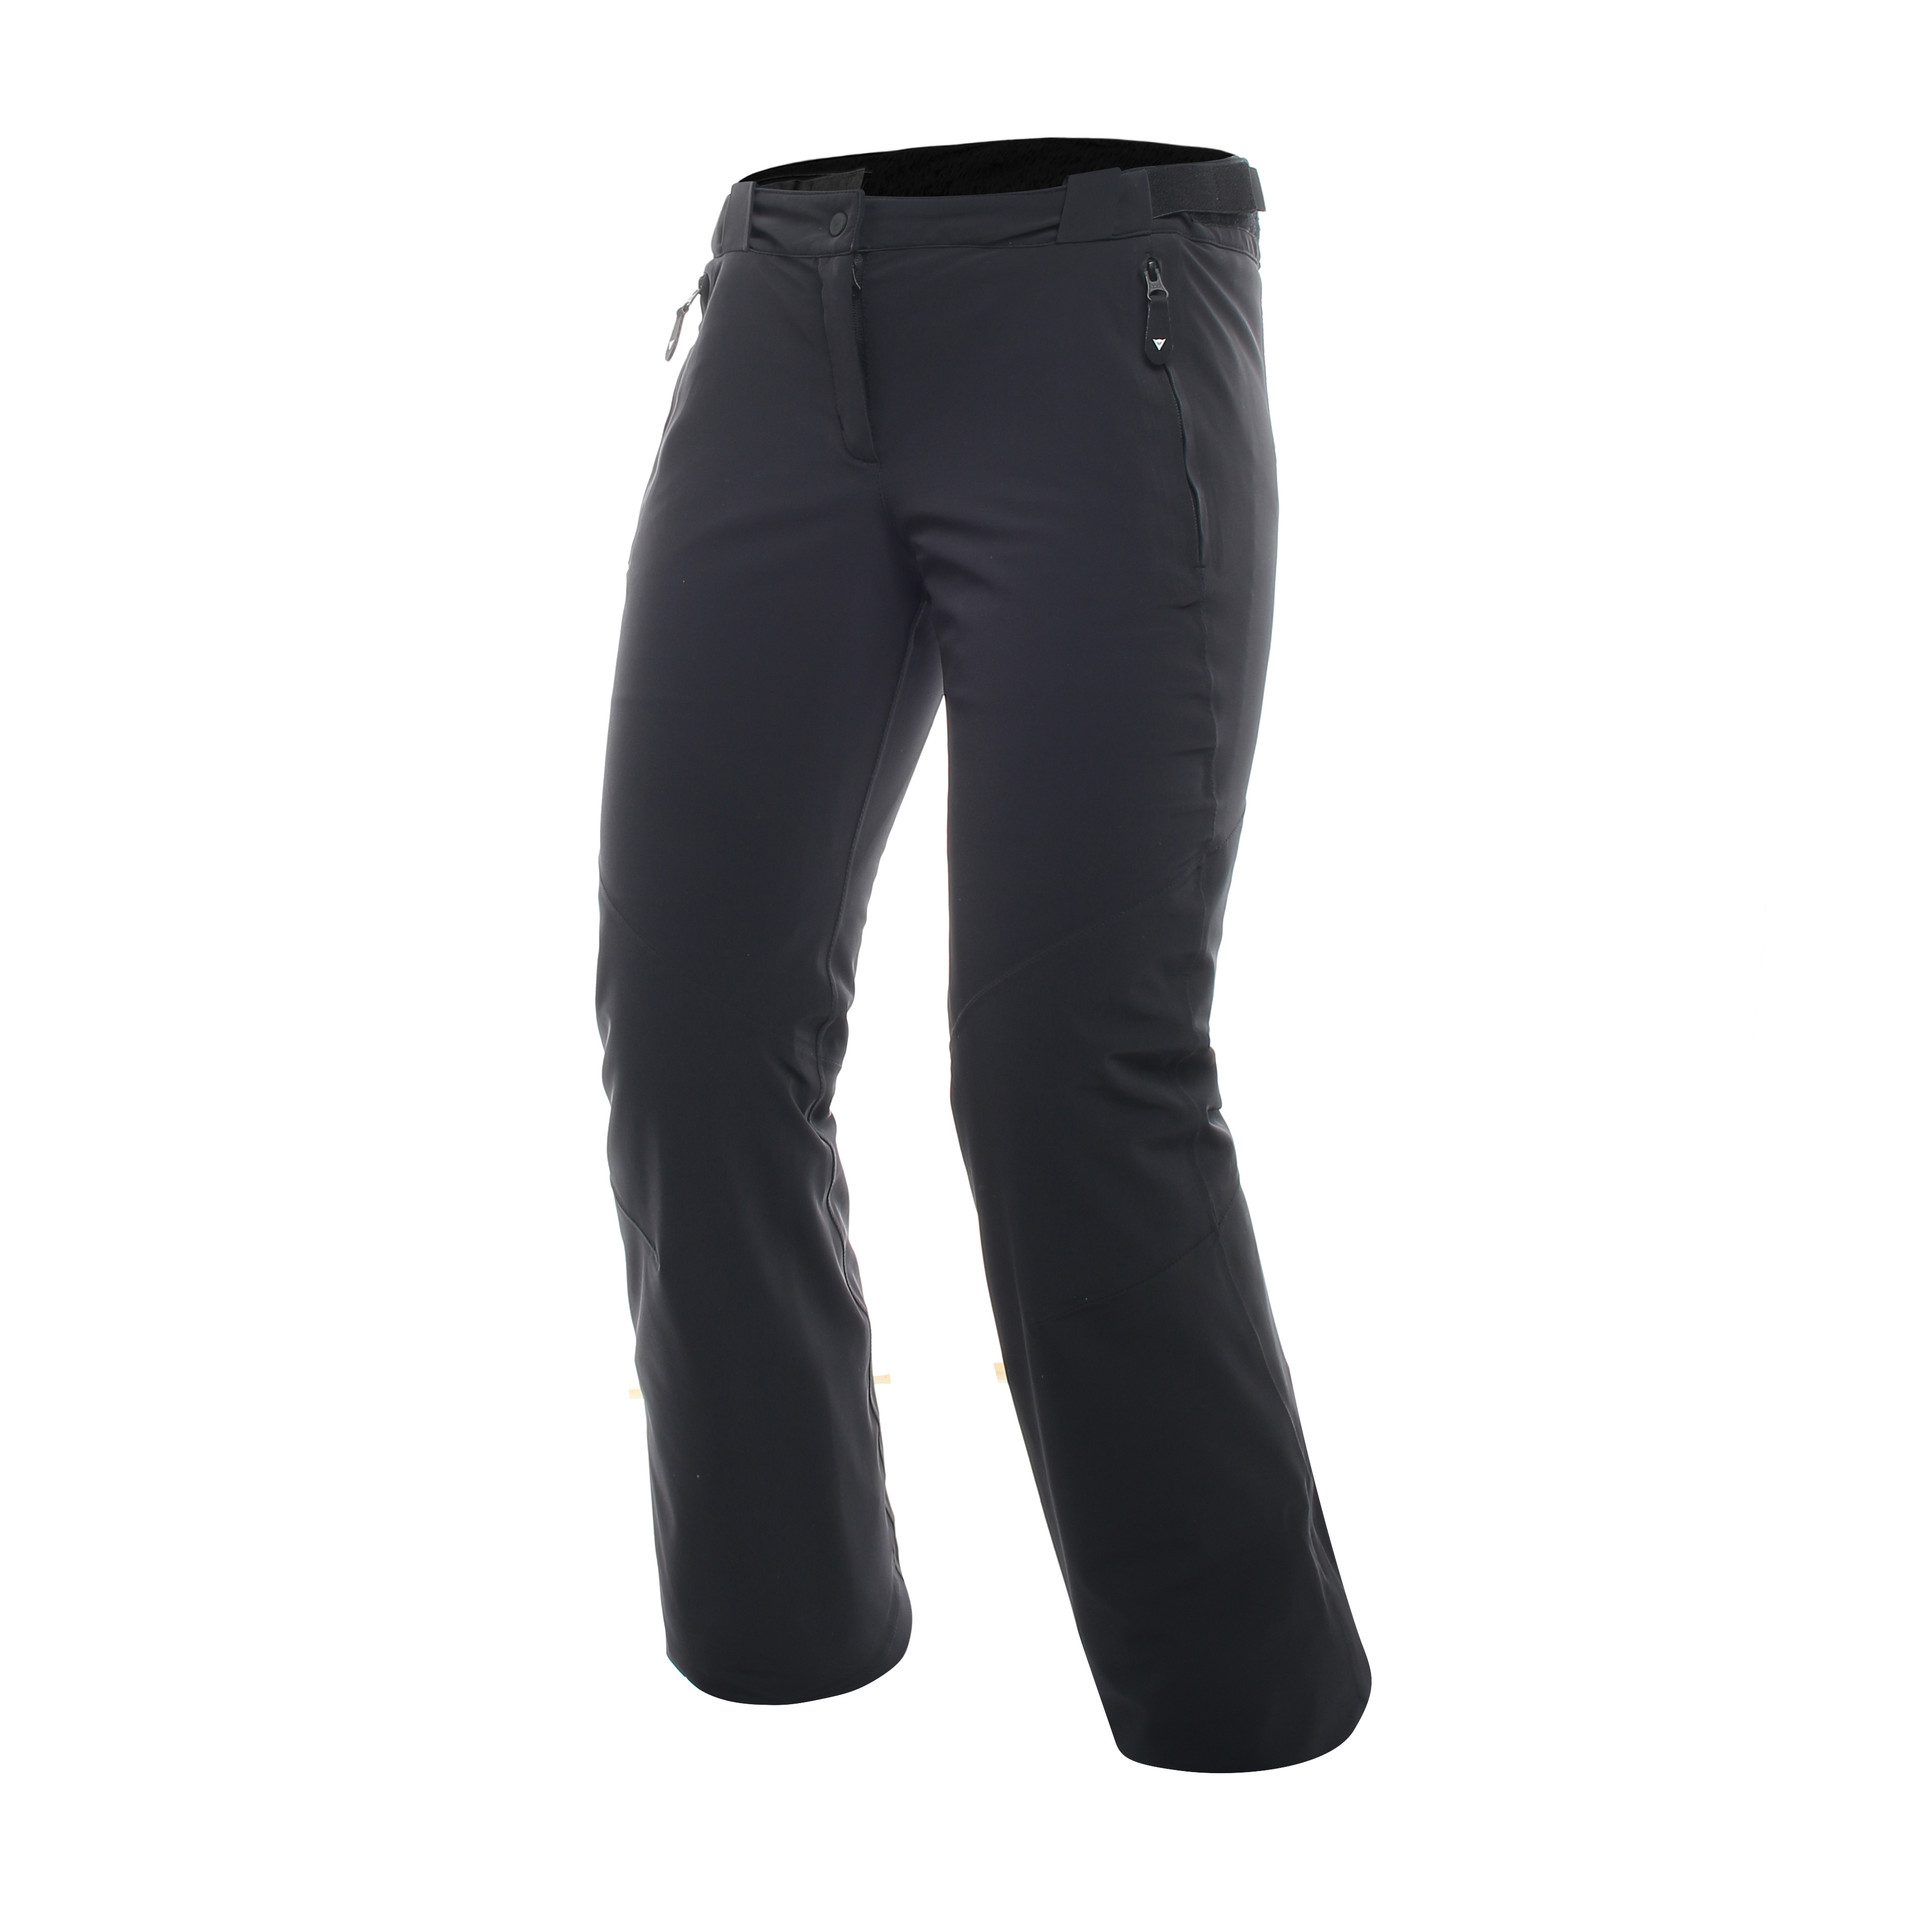 DAINESE PANT.HP2 P L1 - (Y41 STRETCH LIMO) - 2019